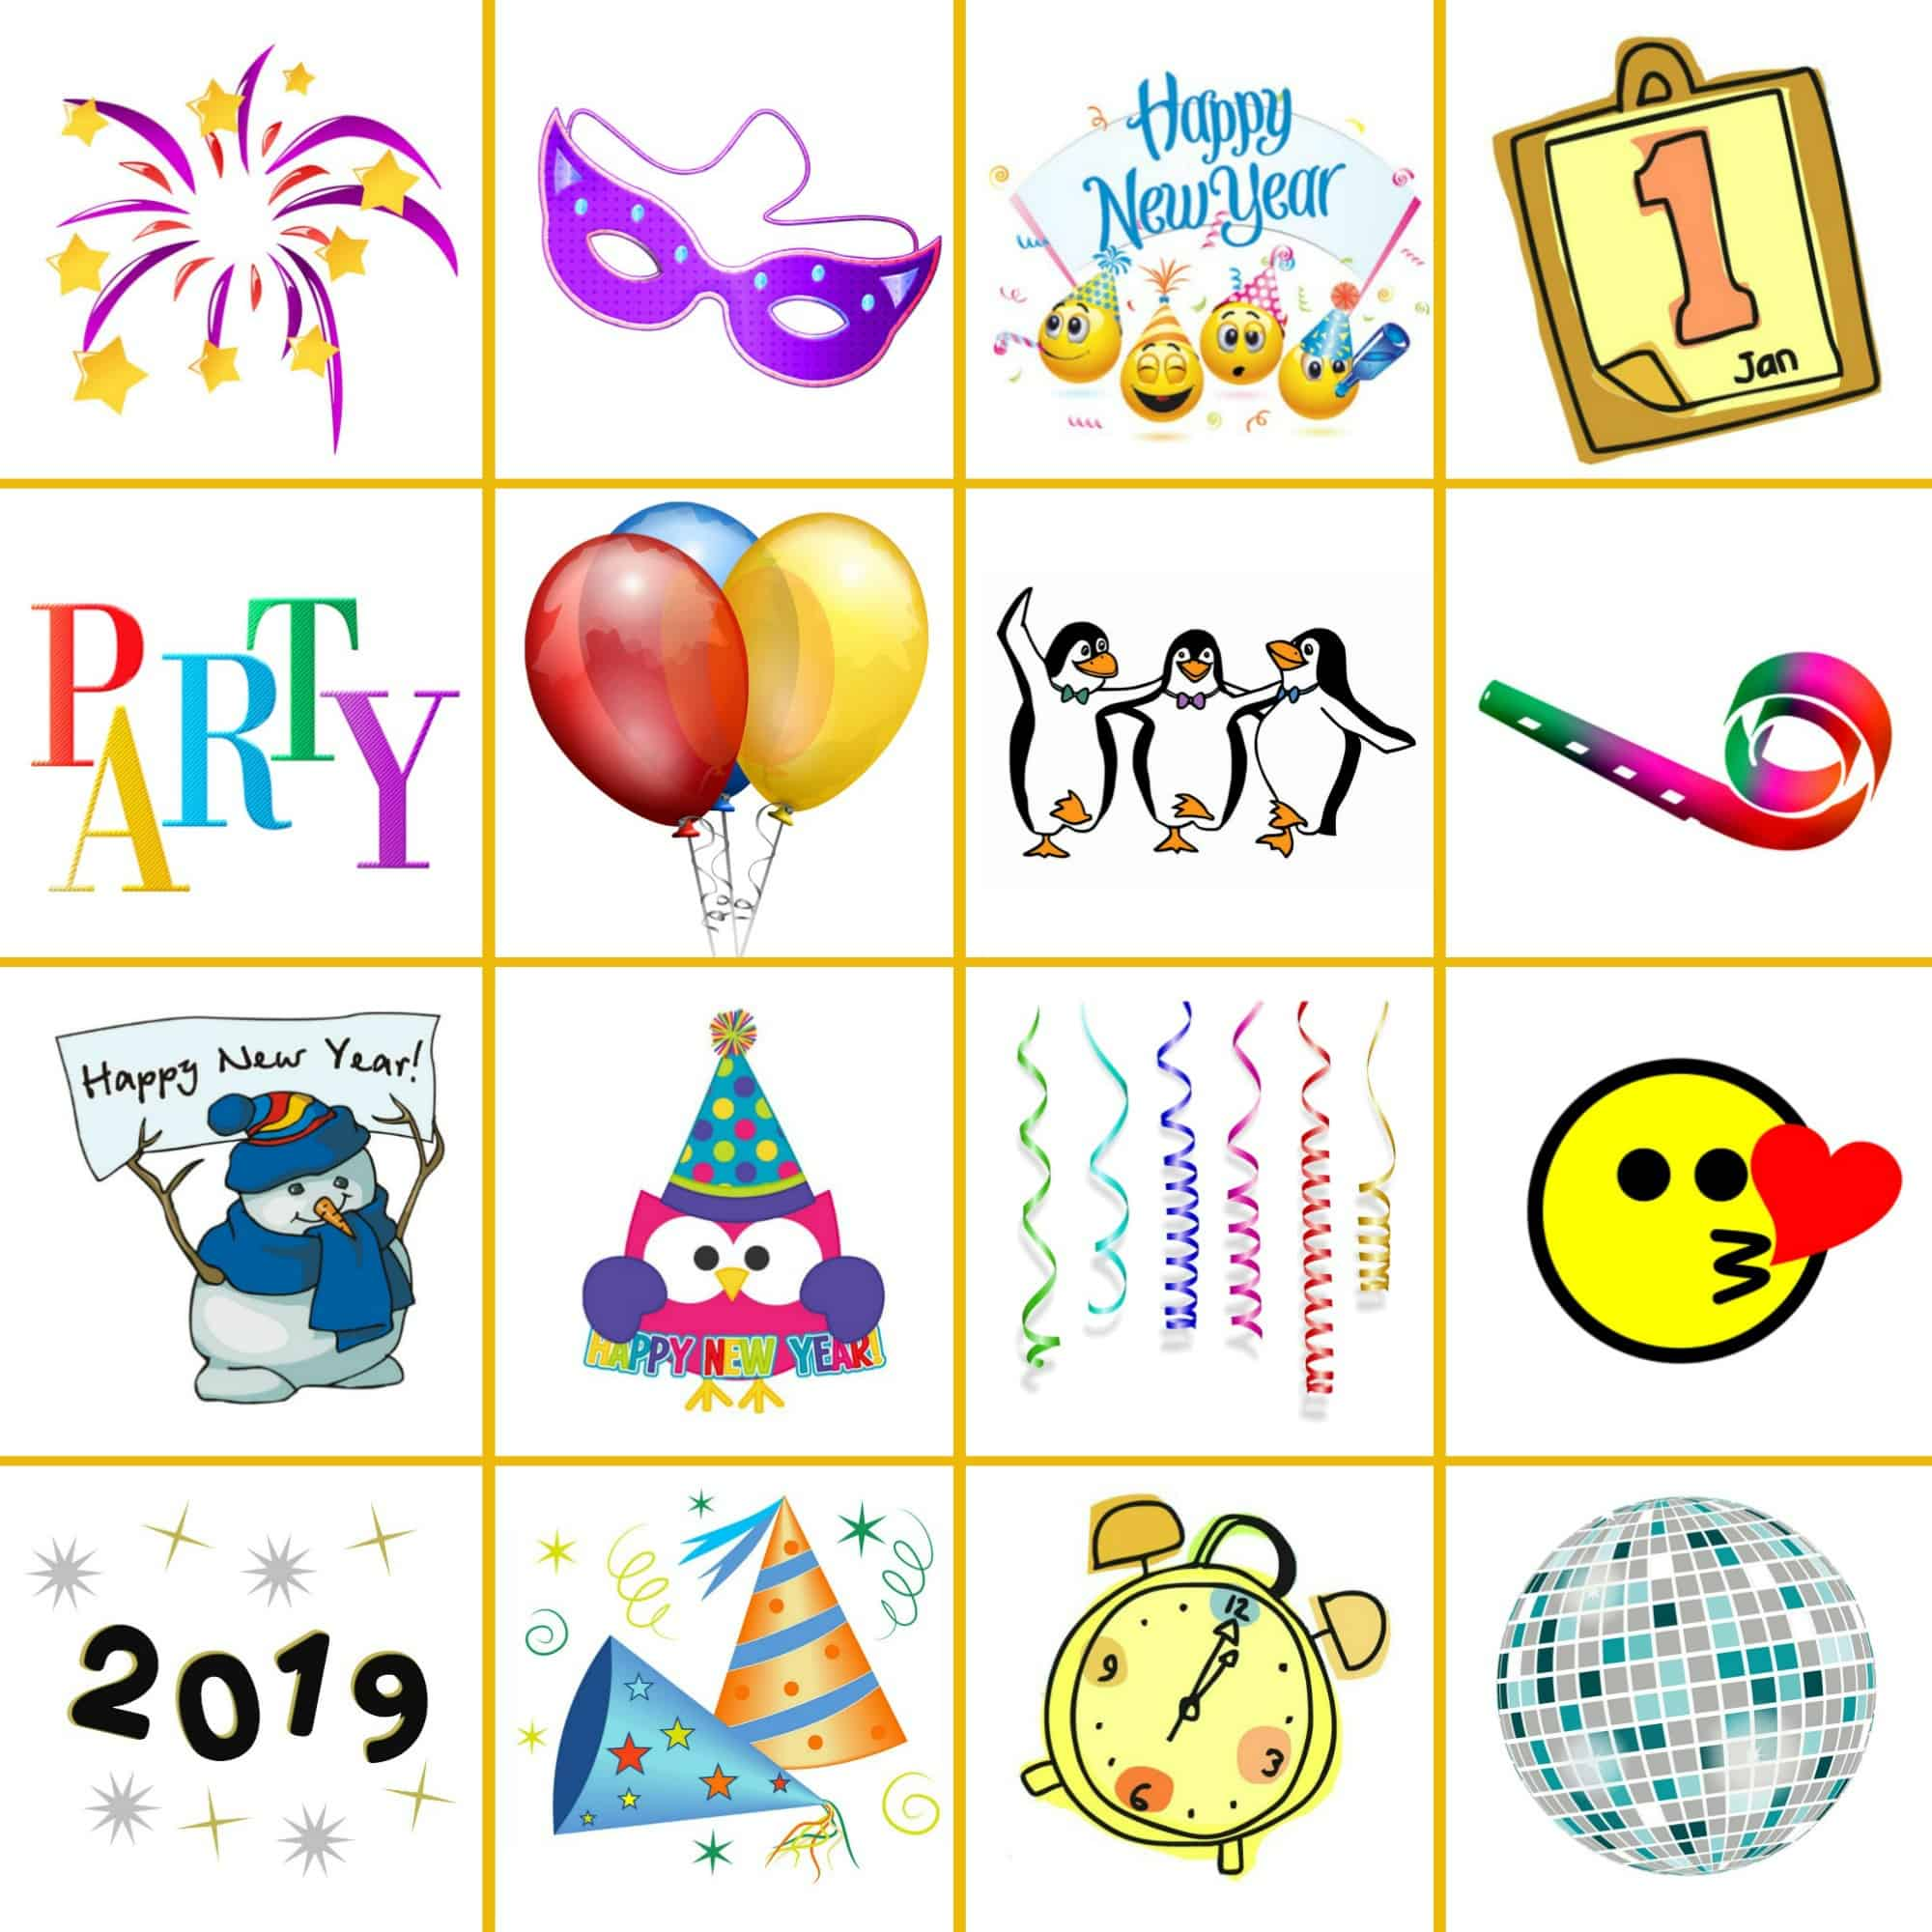 New Year's Eve bingo calling cards